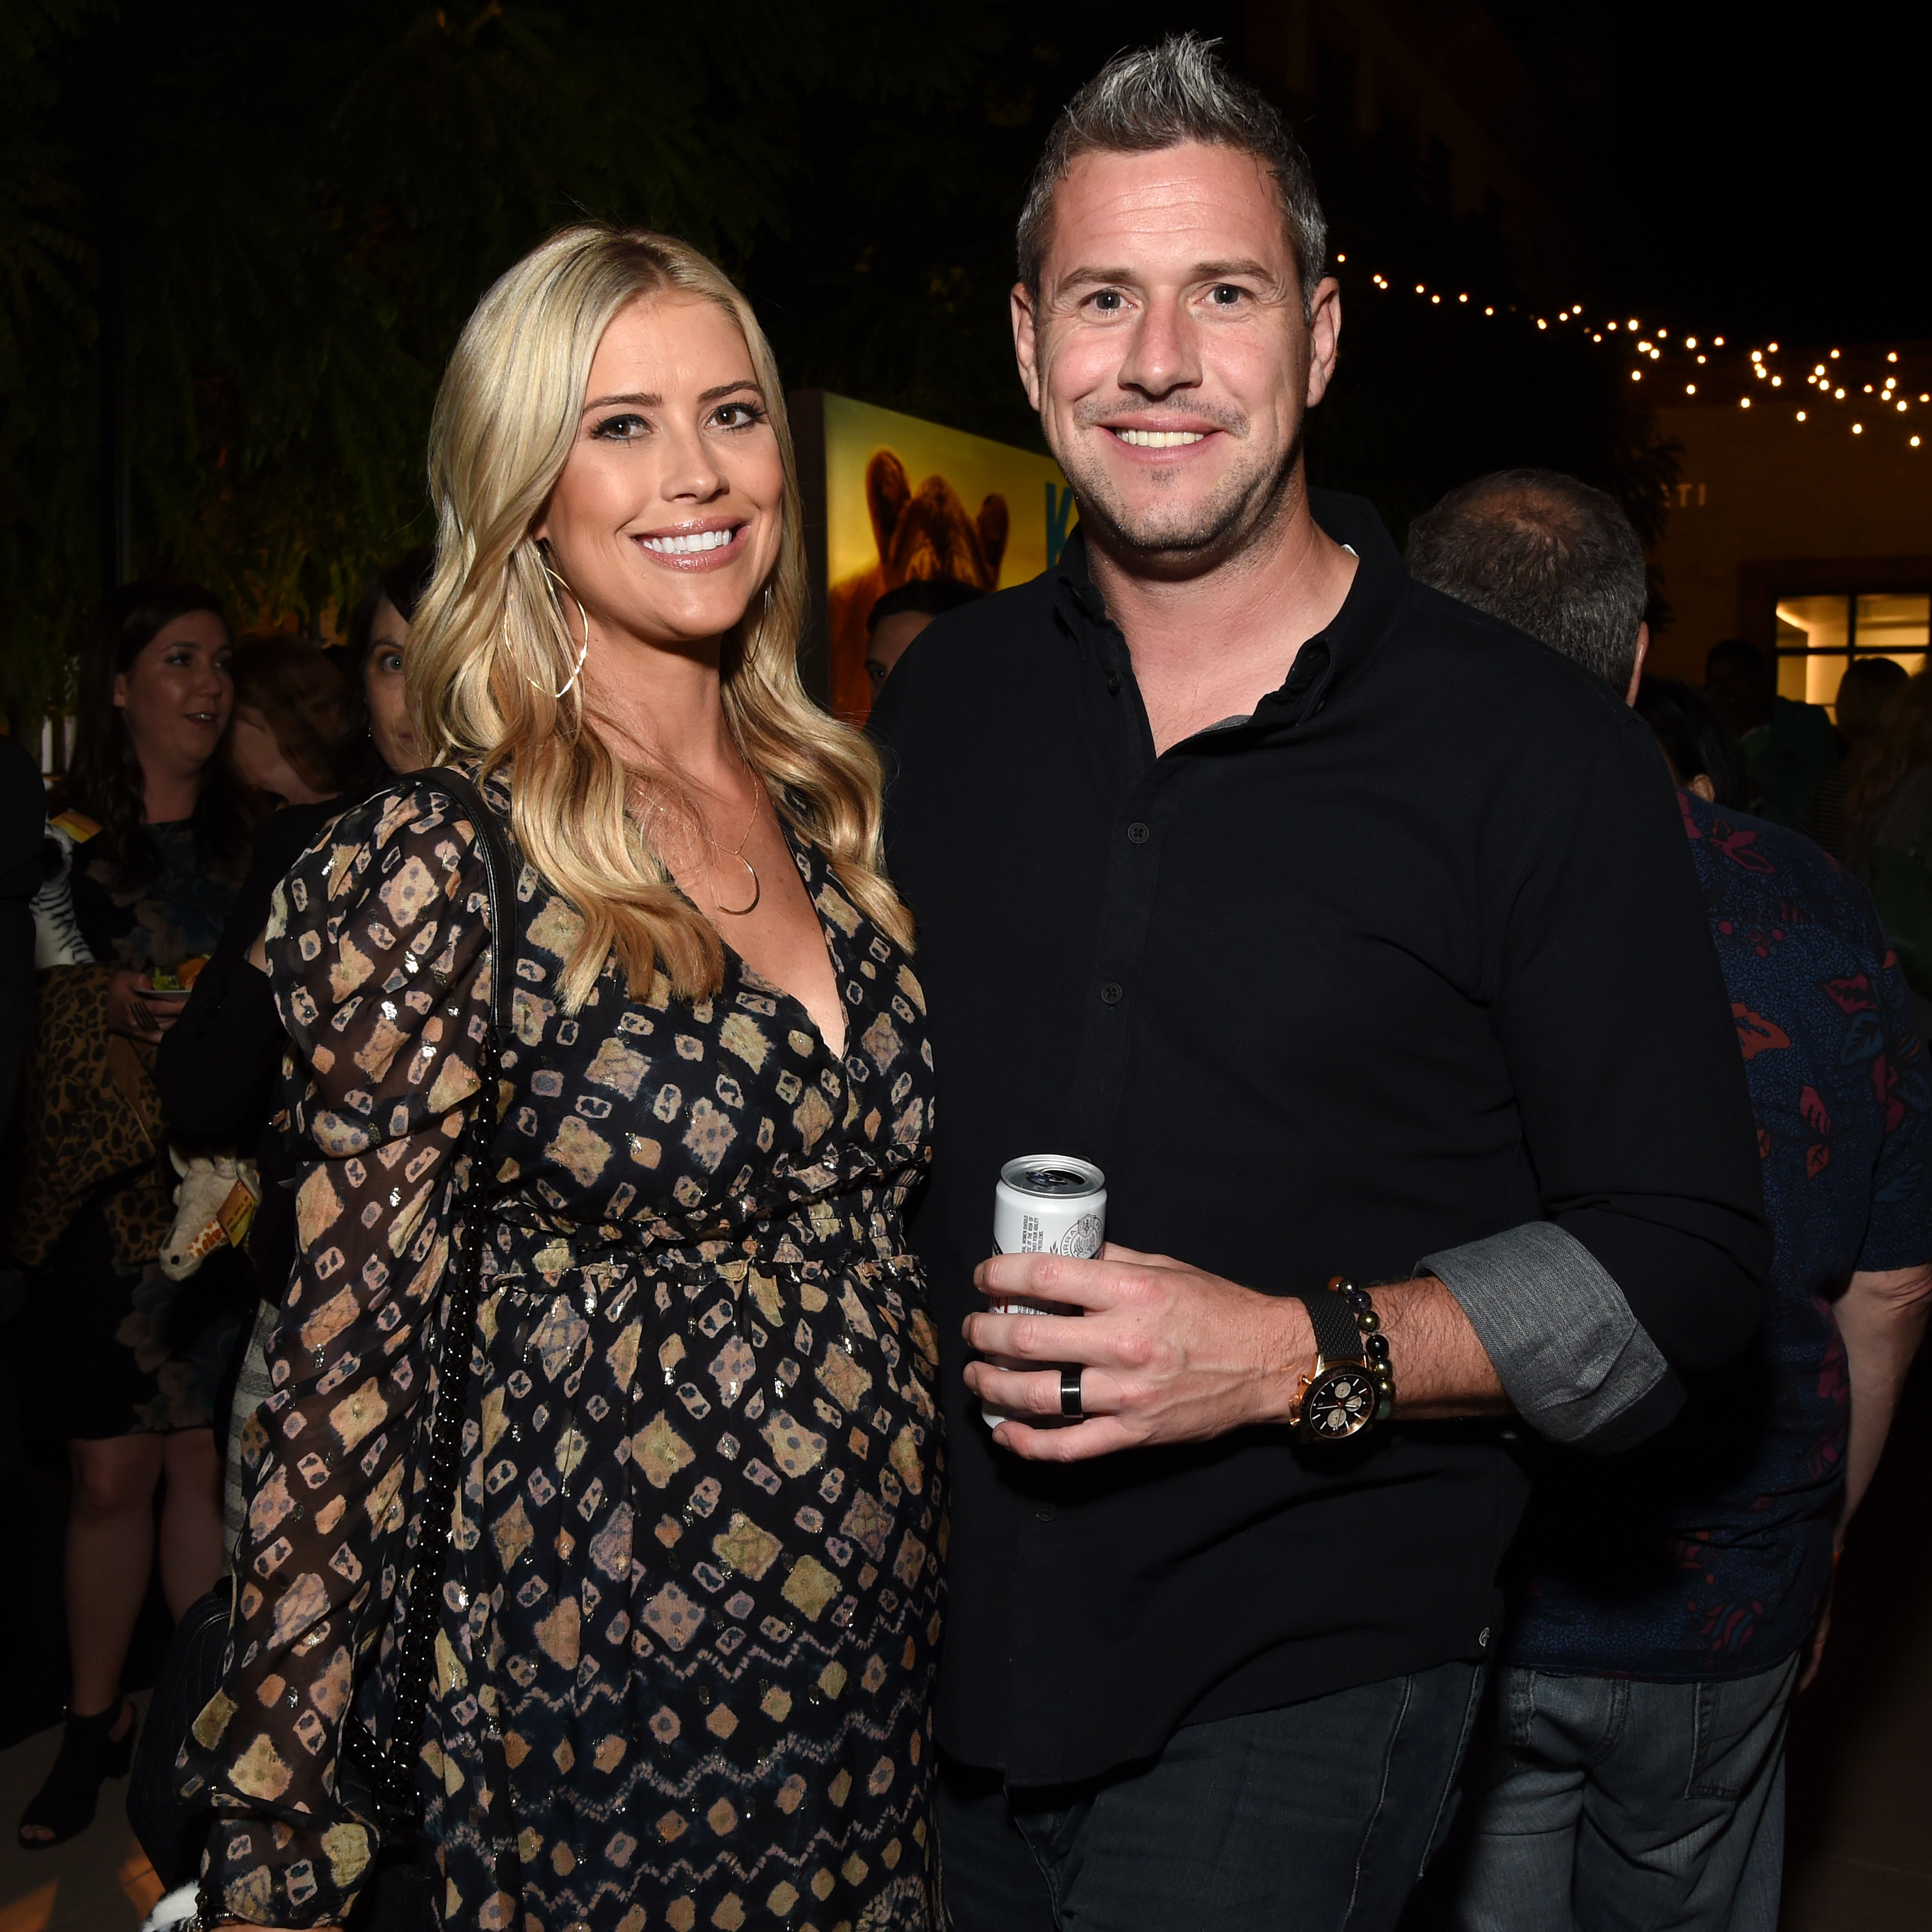 """Christina and Ant Anstead at the """"Serengeti"""" premiere on July 23, 2019 in Beverly Hills, California. 